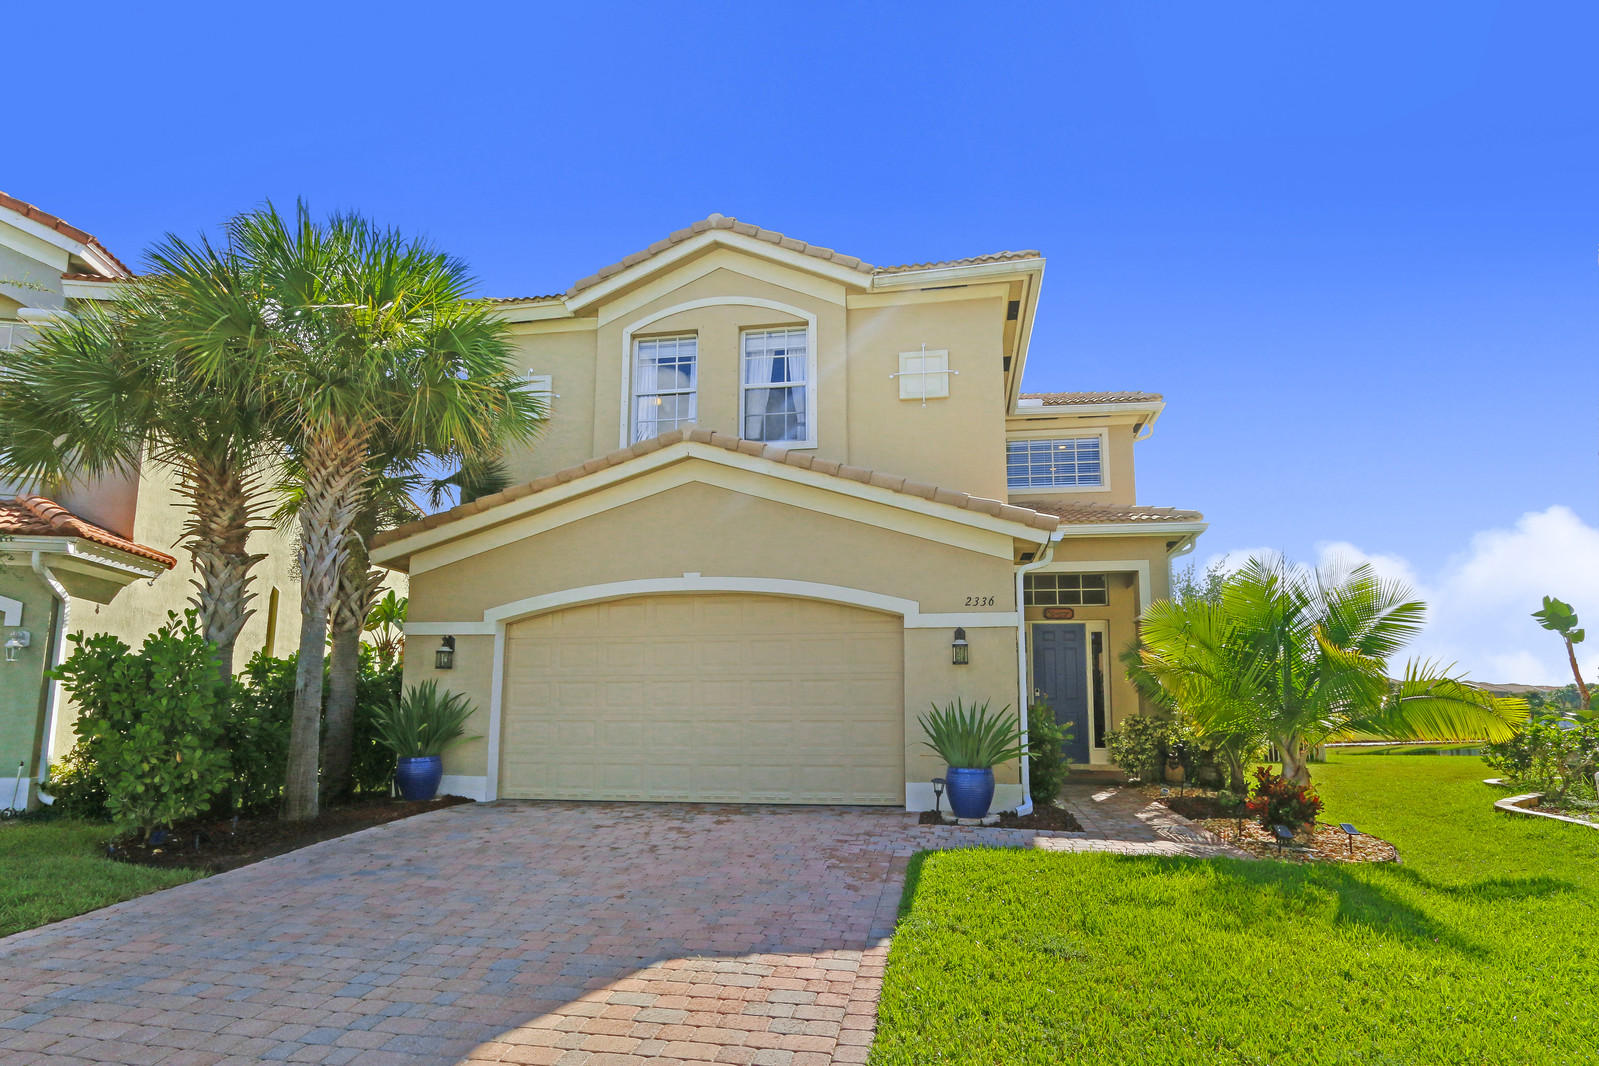 2336 Nw Del Corso Court, Saint Lucie West, FL 34986